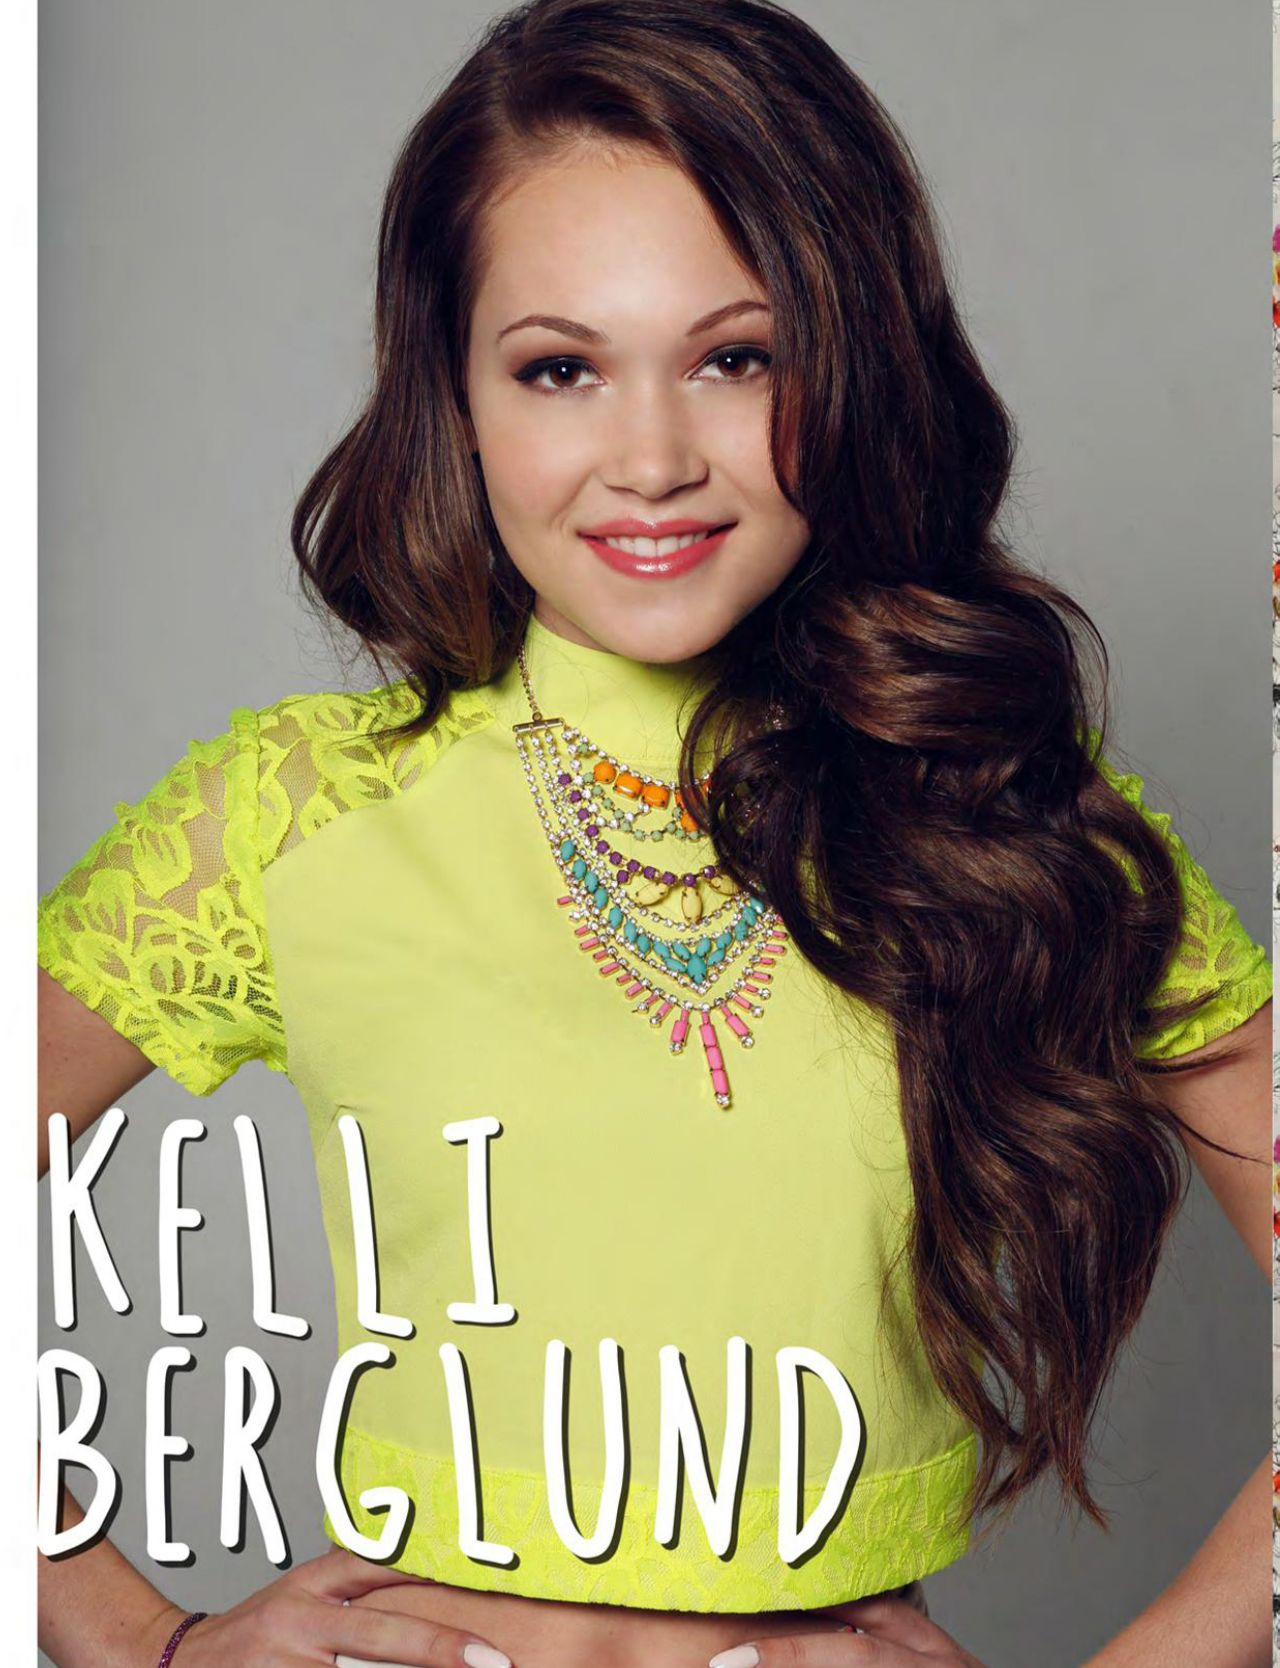 Kelli Berglund - Afterglow Magazine July 2014 Issue